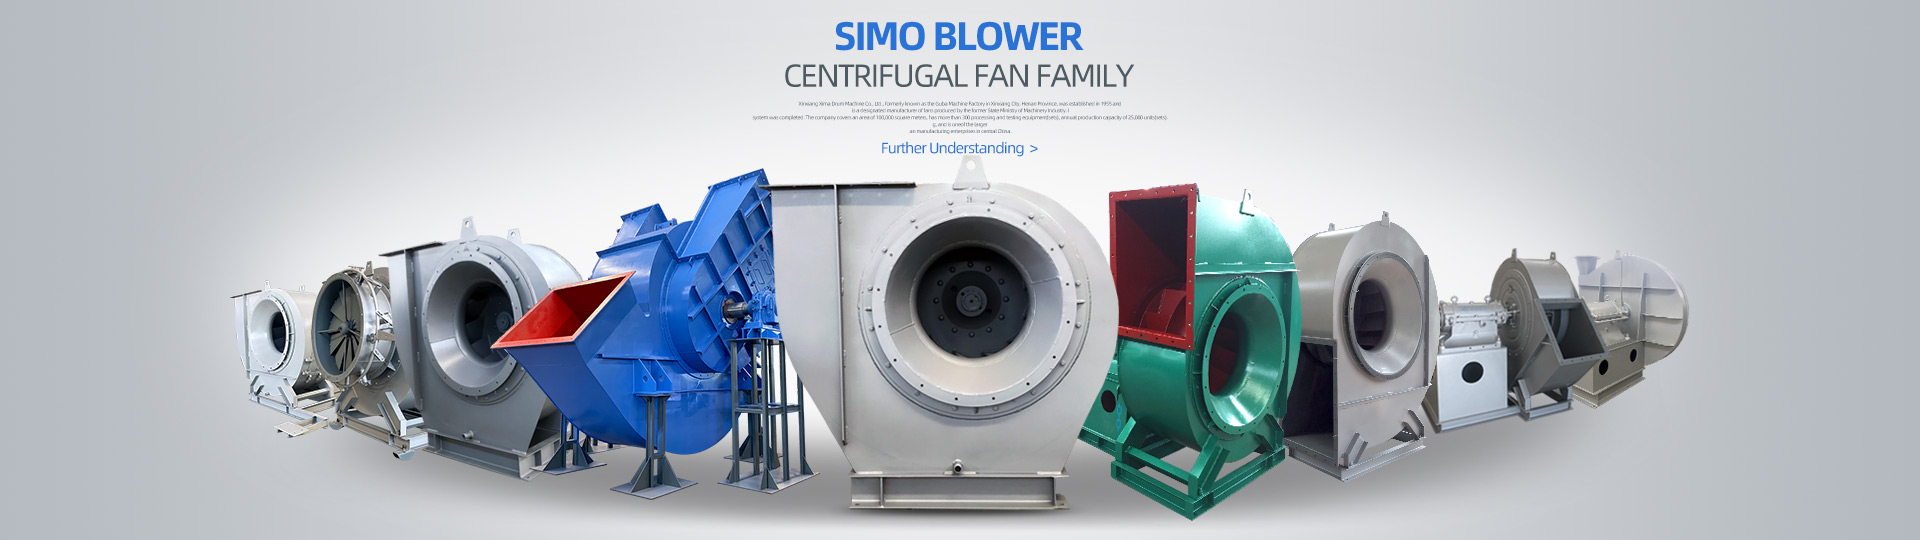 A world leader in the manufacturing of Centrifugal Fan